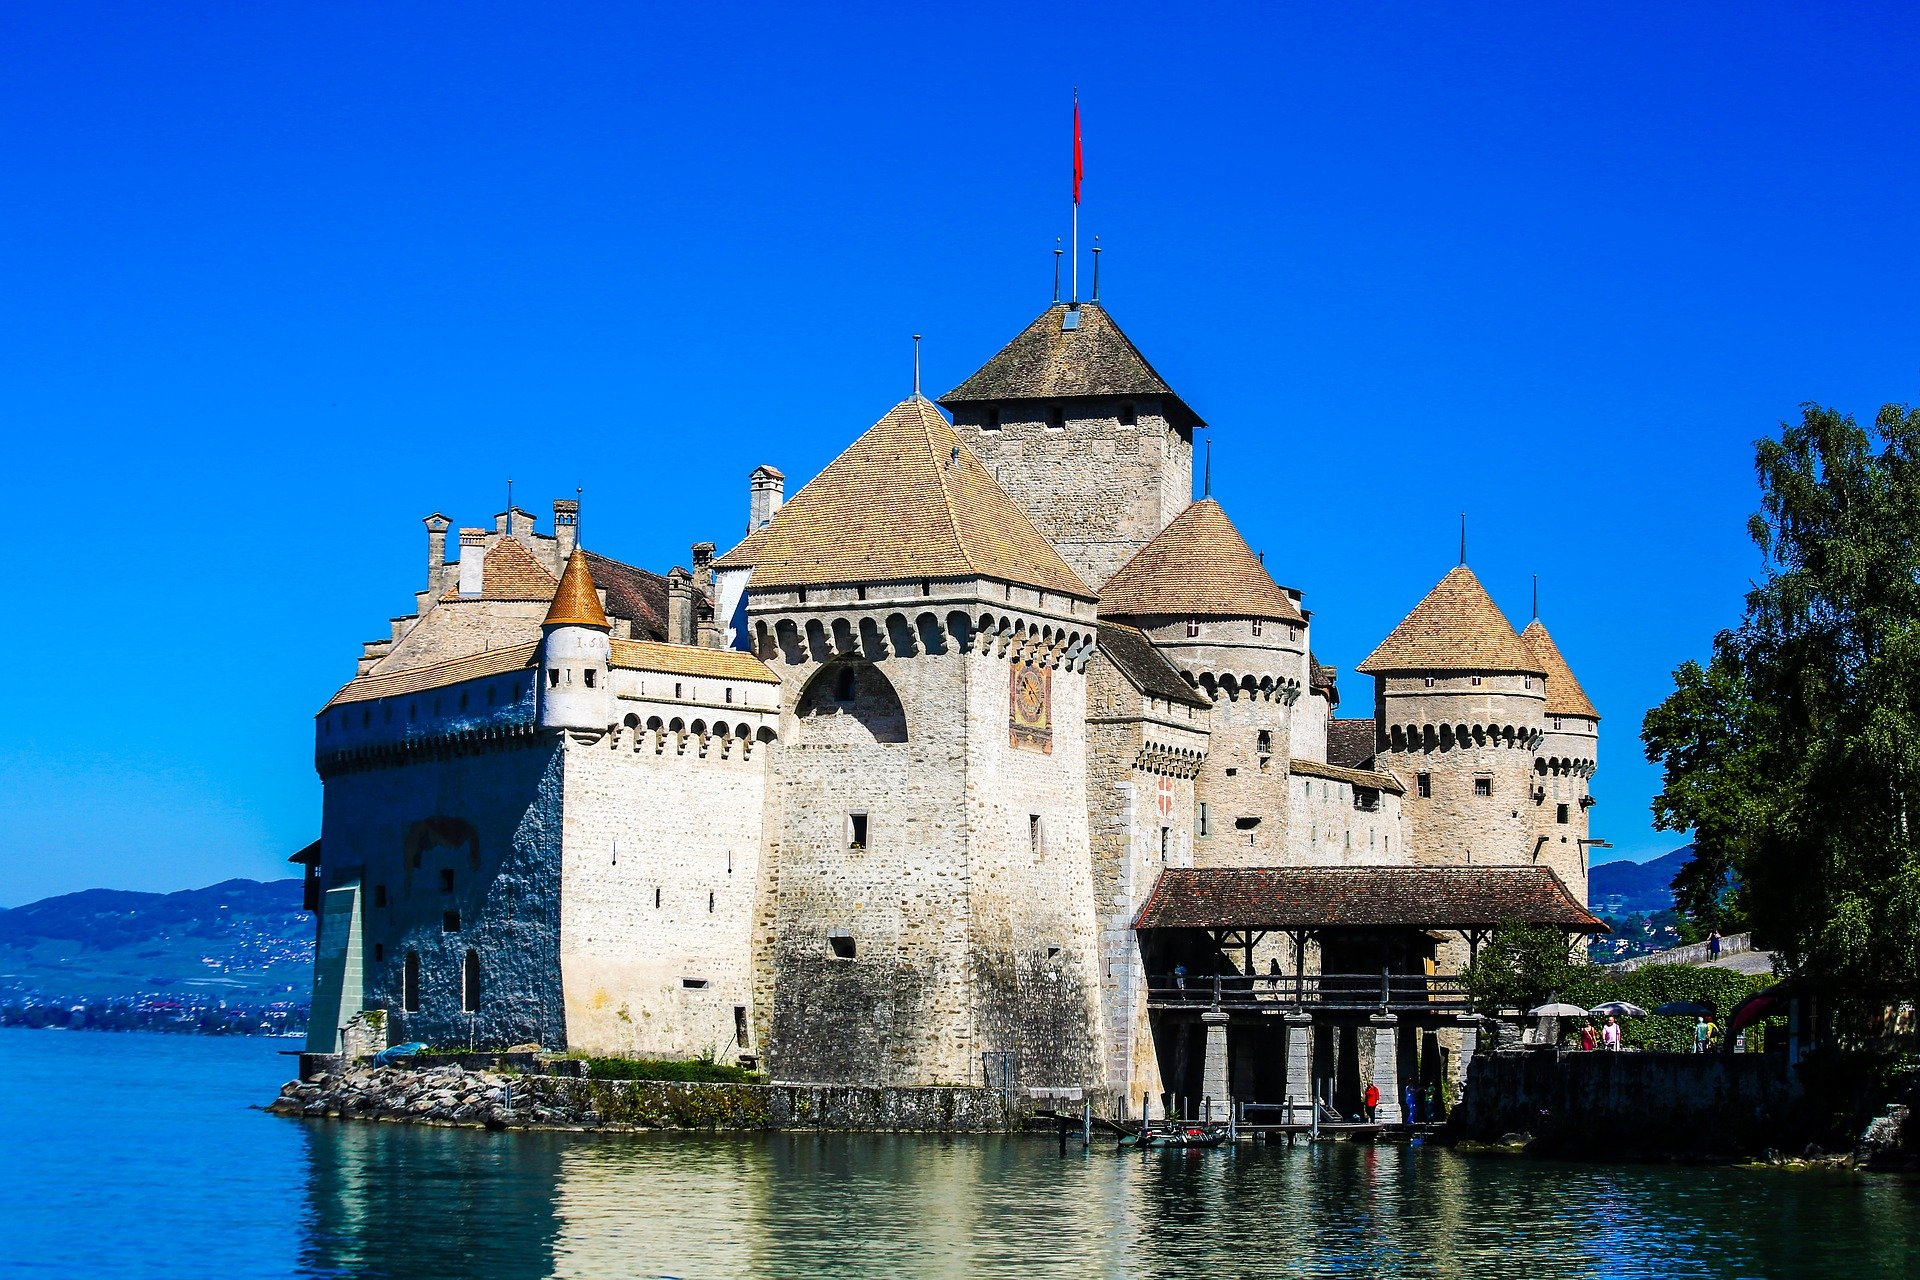 Château de Chillon on the shore of Lake Geneva